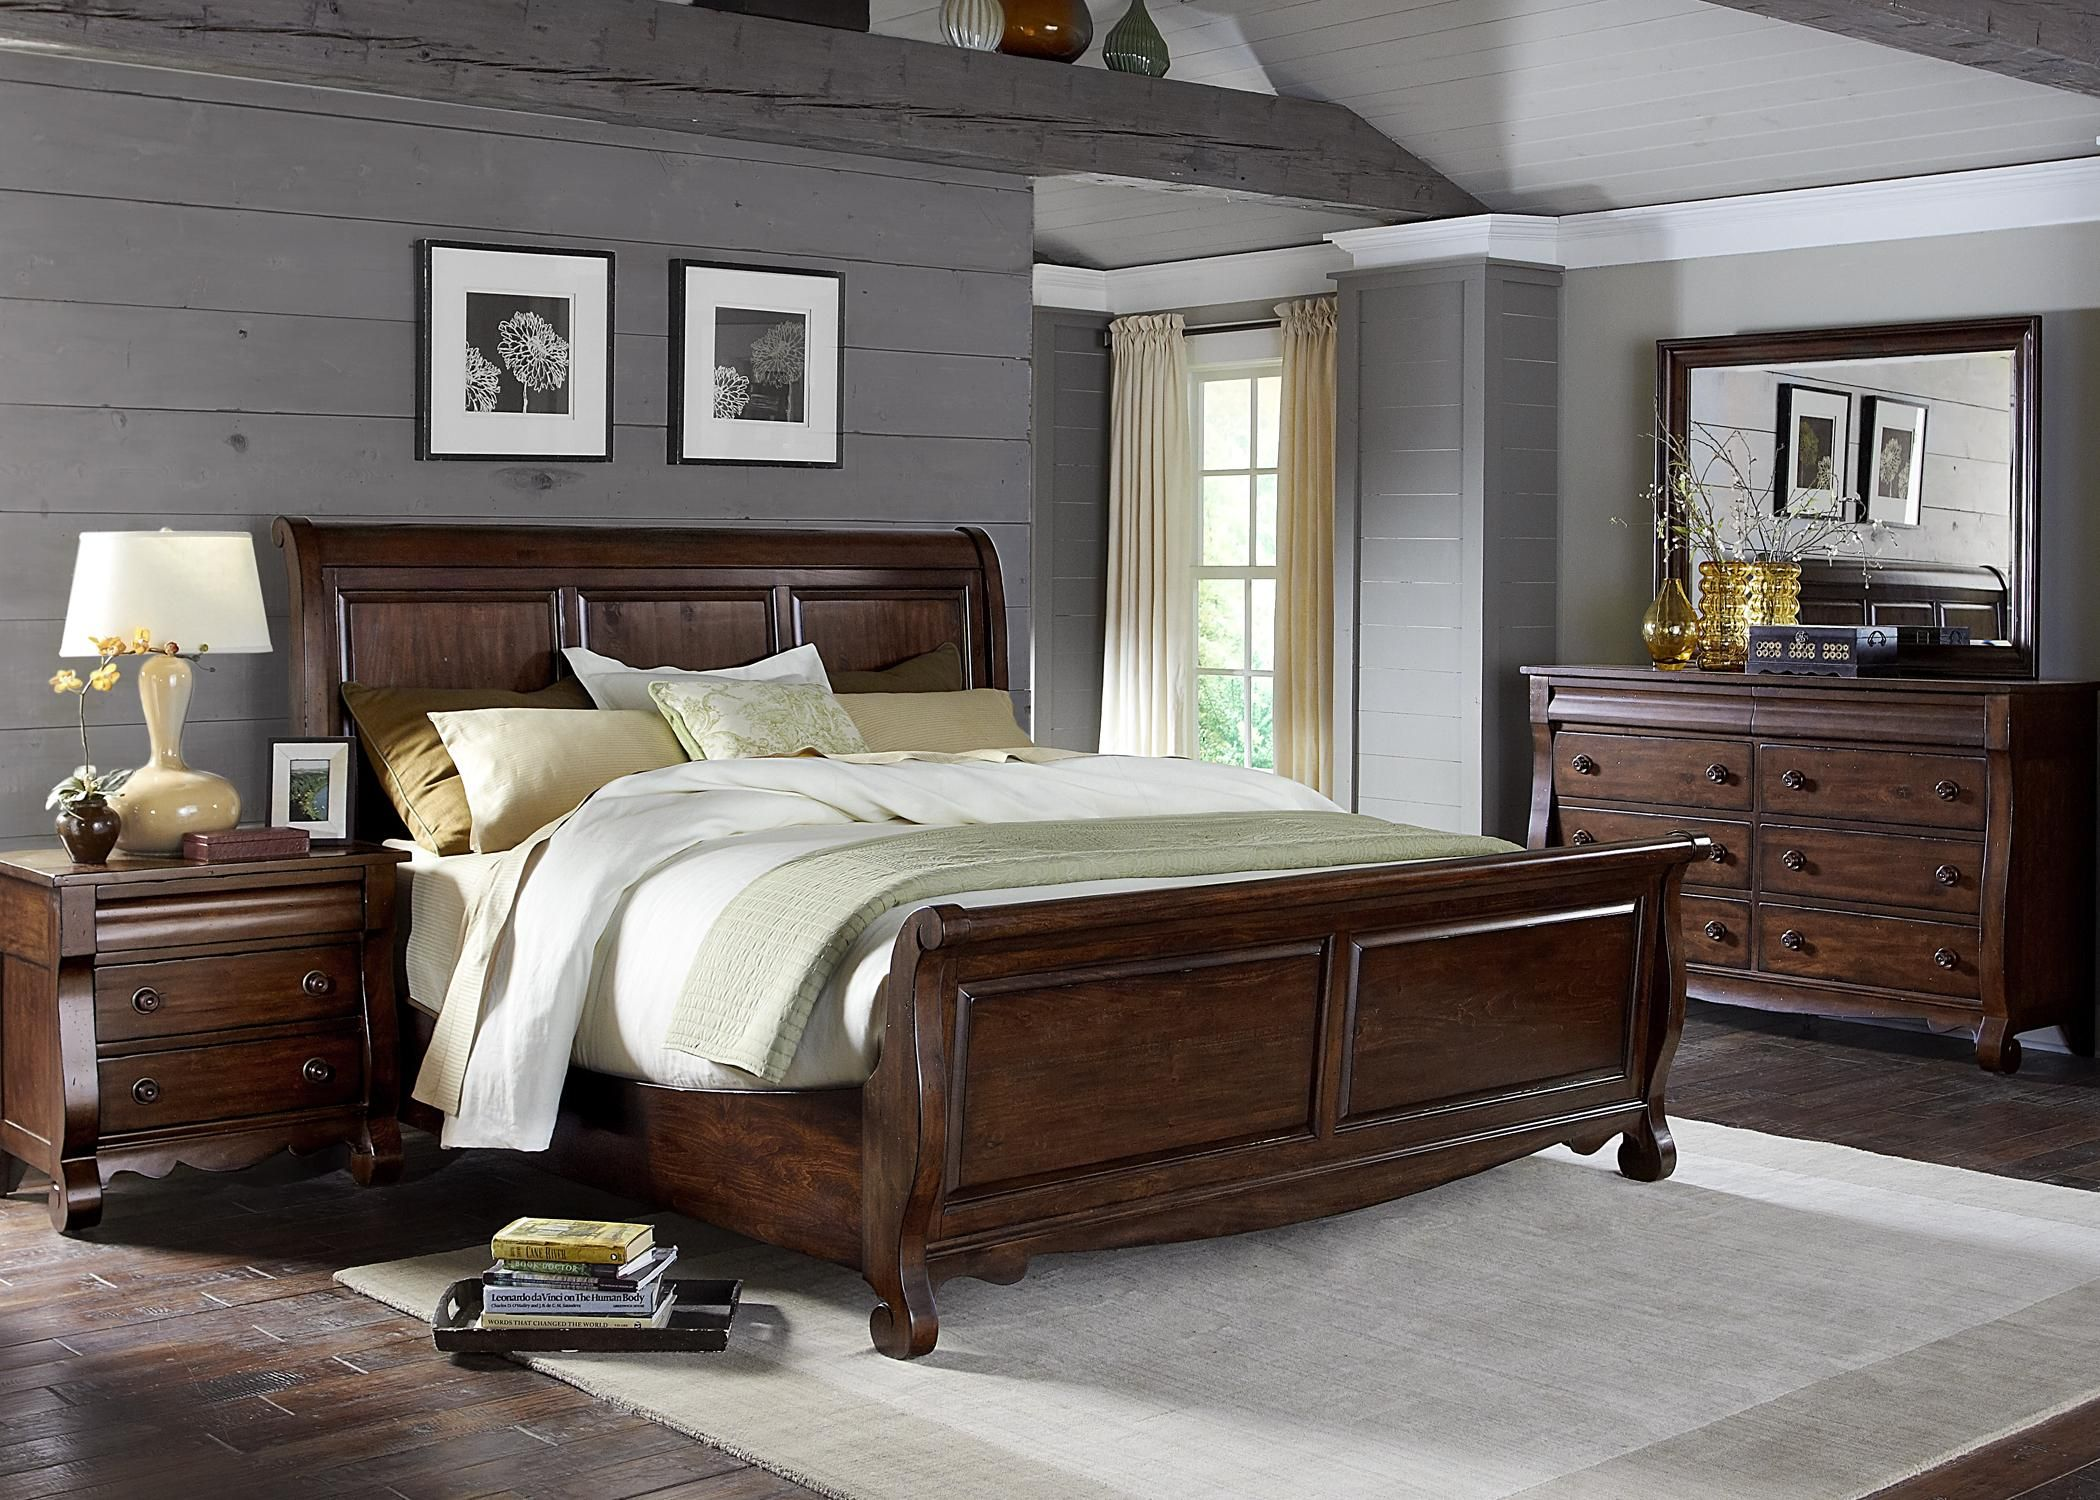 Transitional In Style This Sleigh Bed Can Fit In With Classic Or